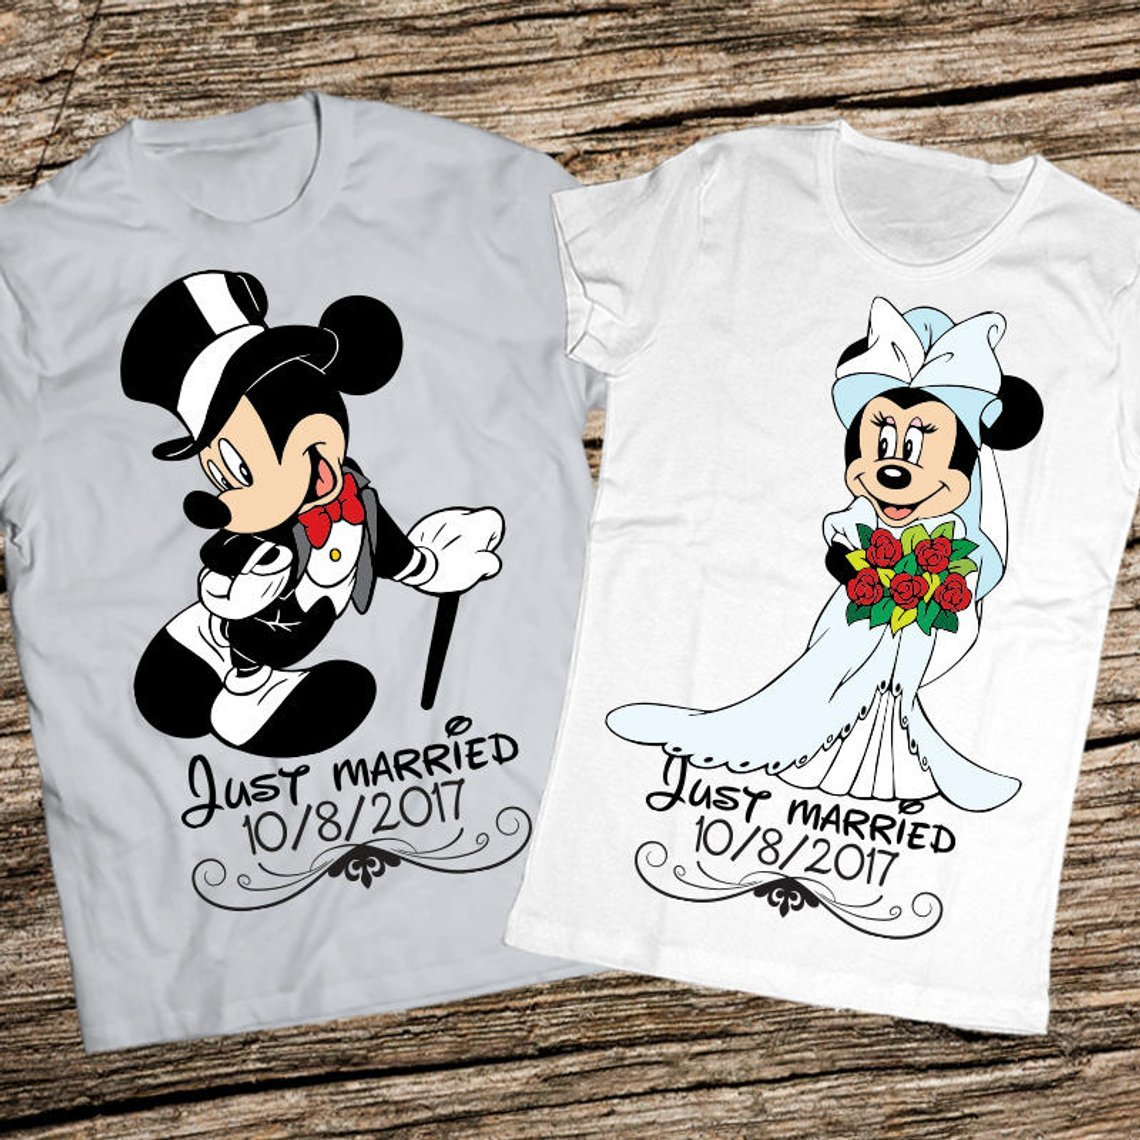 Just Married Mickey & Minnie Tees